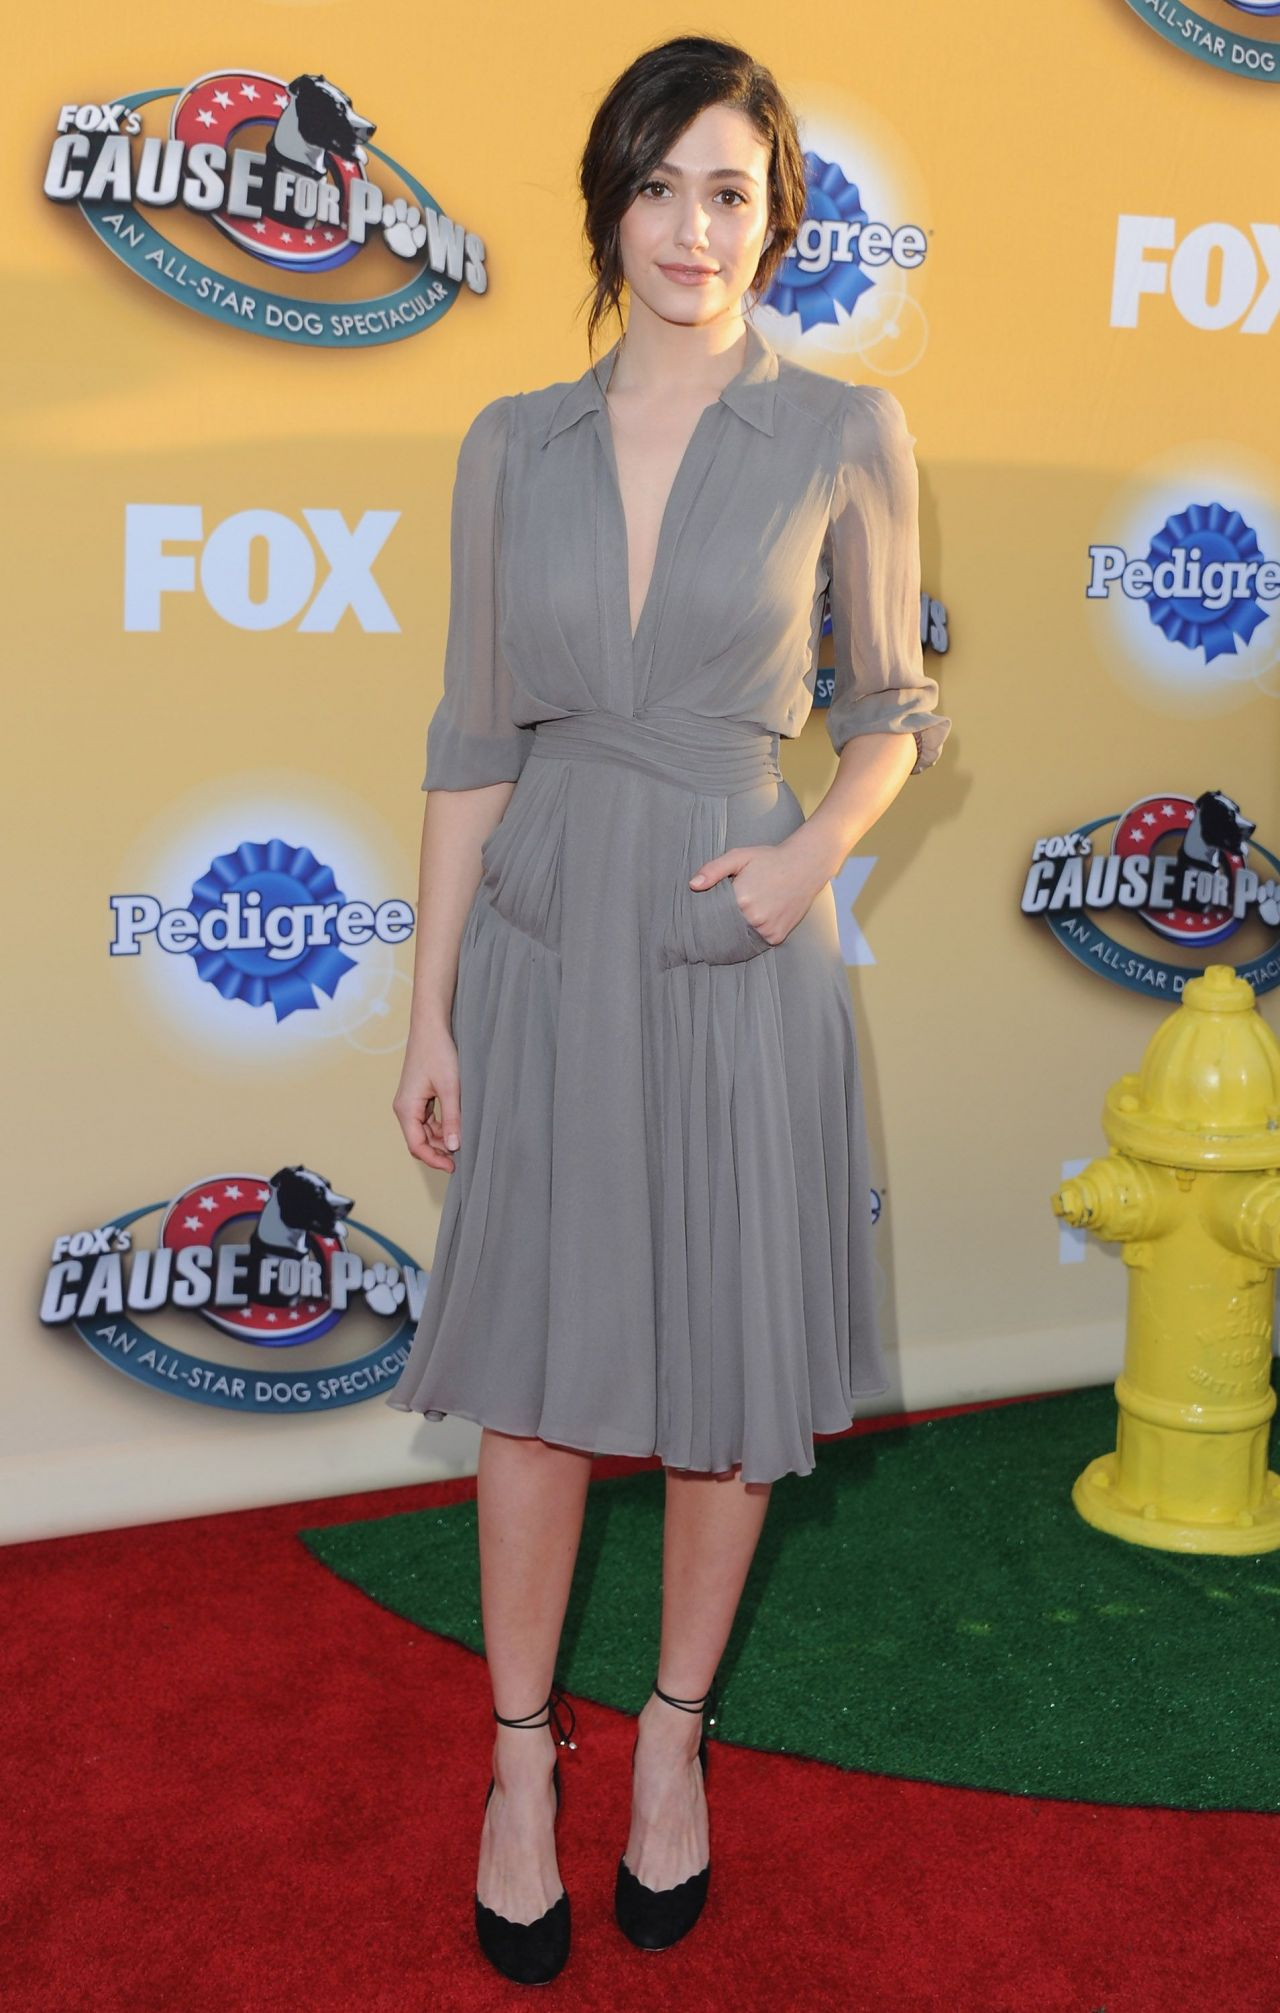 Emmy Rossum – FOX's Cause For PawsAn All-Star Dog Spectacular in Santa Monica